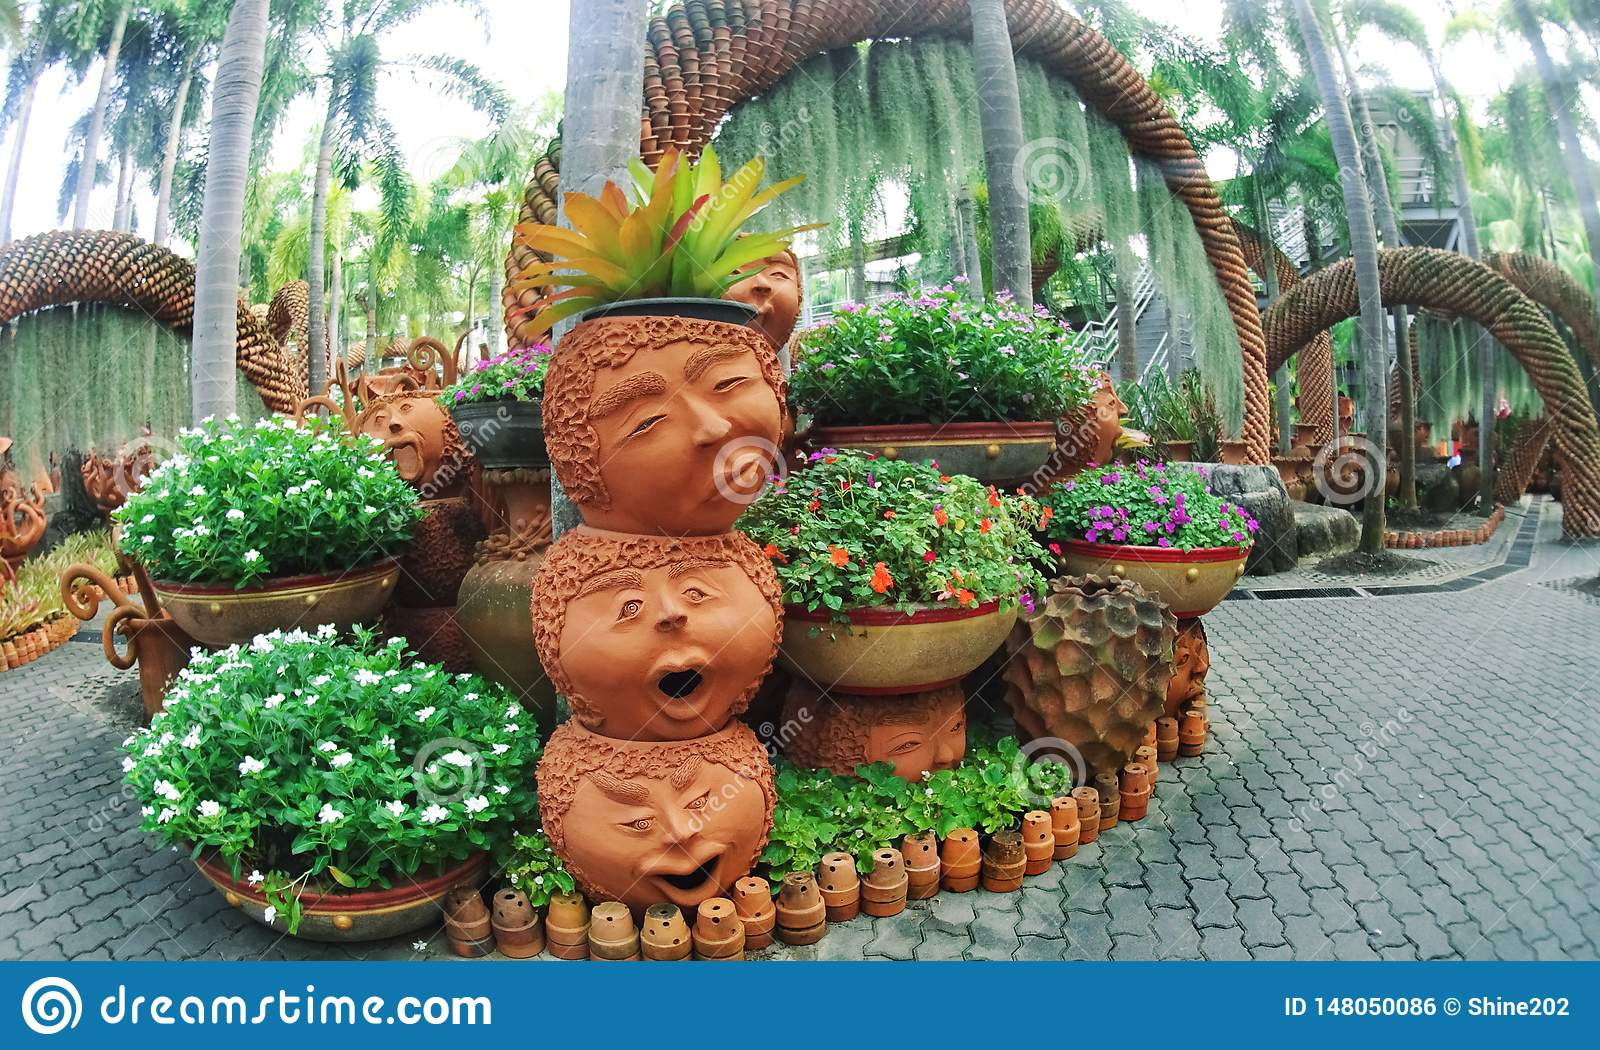 Nong Nooch Park Pattaya with an unusual landscape design of ceramic pots in the form of funny faces and lots of greenery